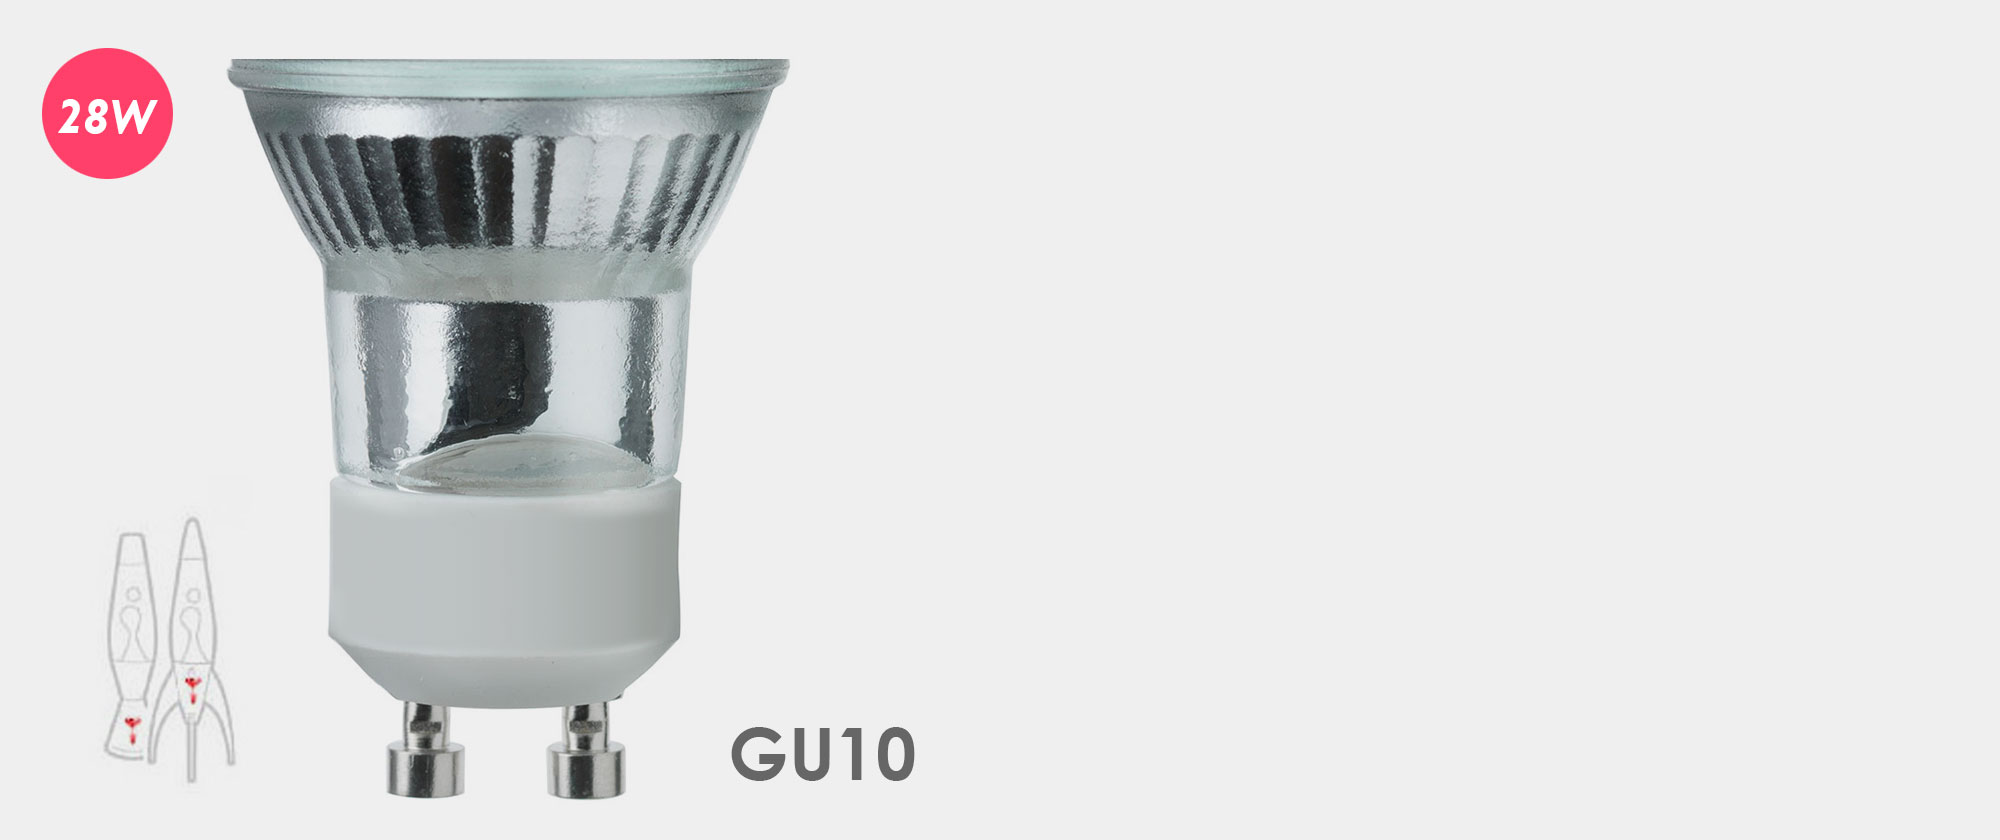 28W   Telstar Lava Lamp Bulb   GU10 Fitting Halogen